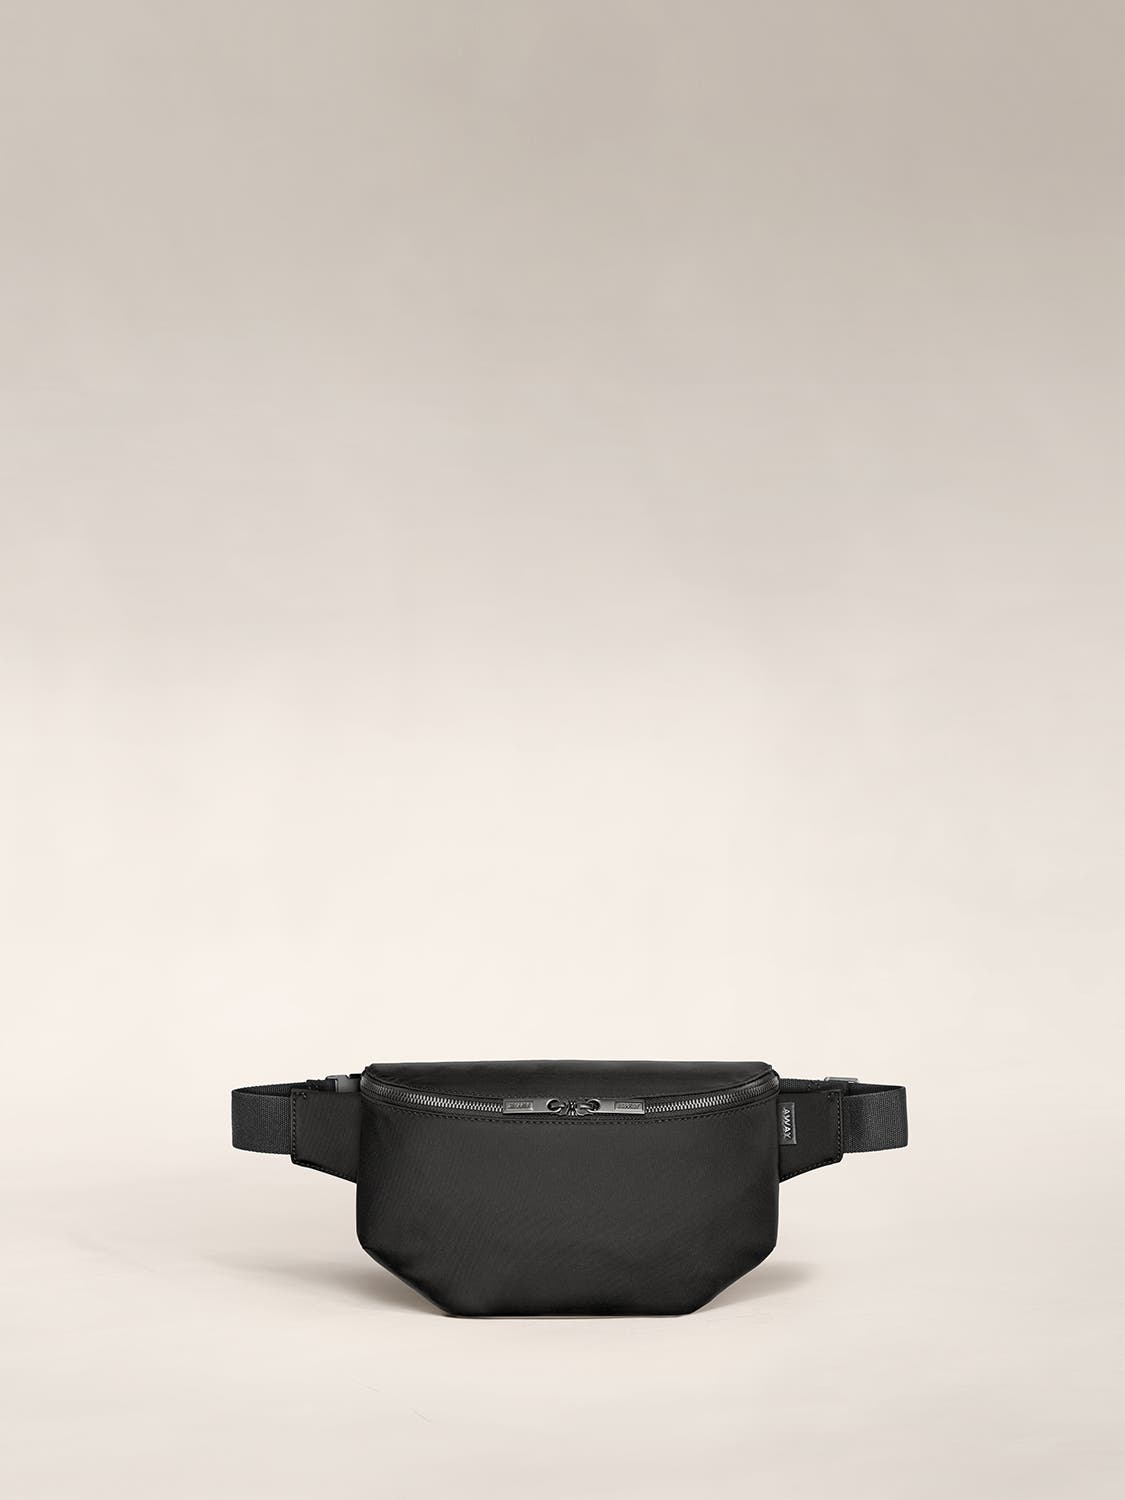 A front view of a sling bag in black.